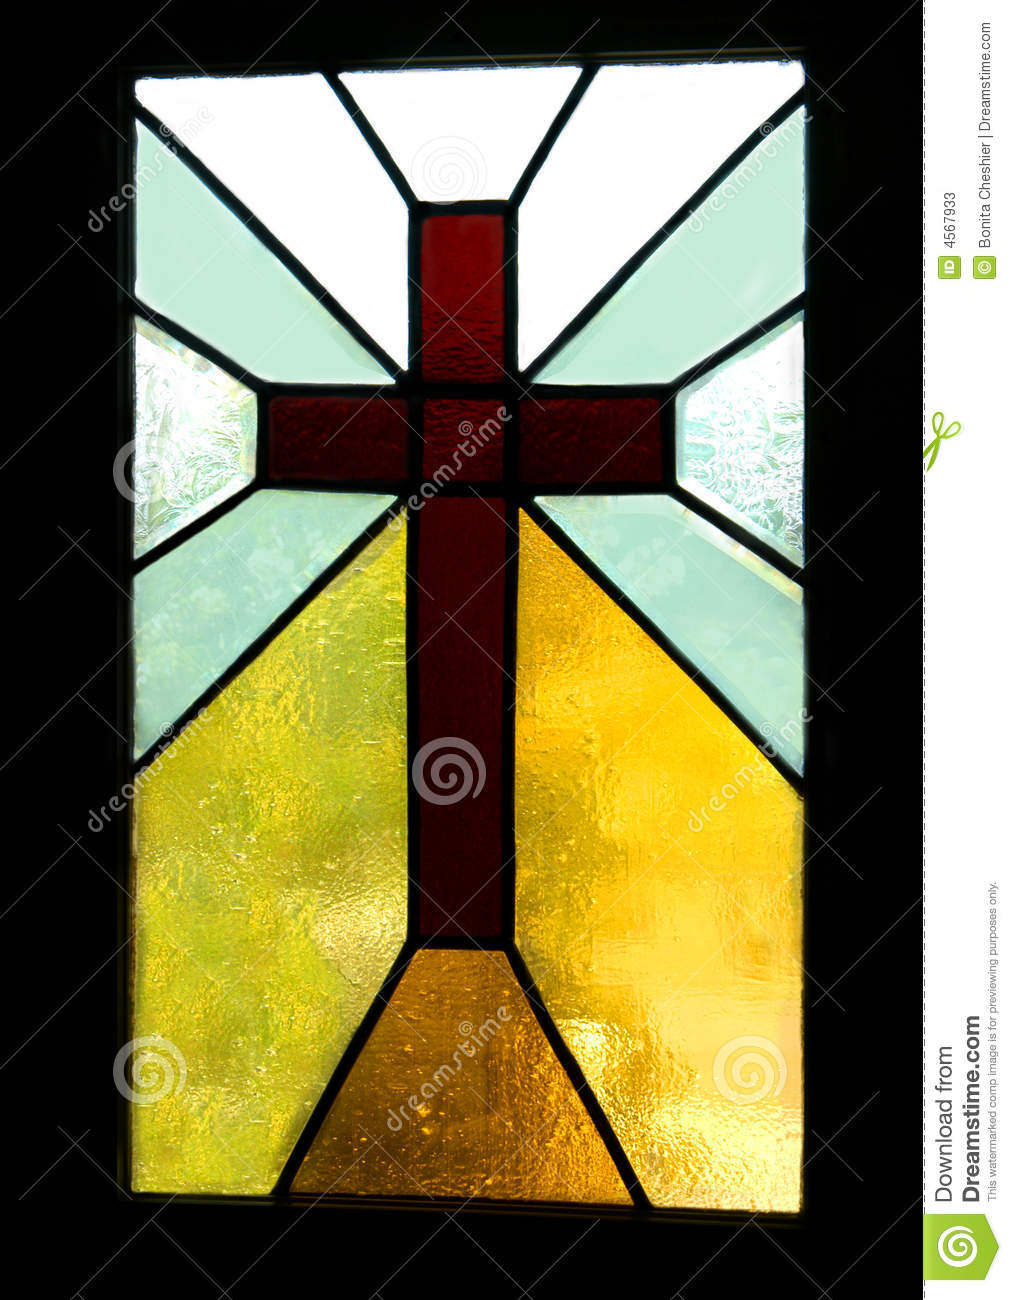 Brown Cross In Stained Glass